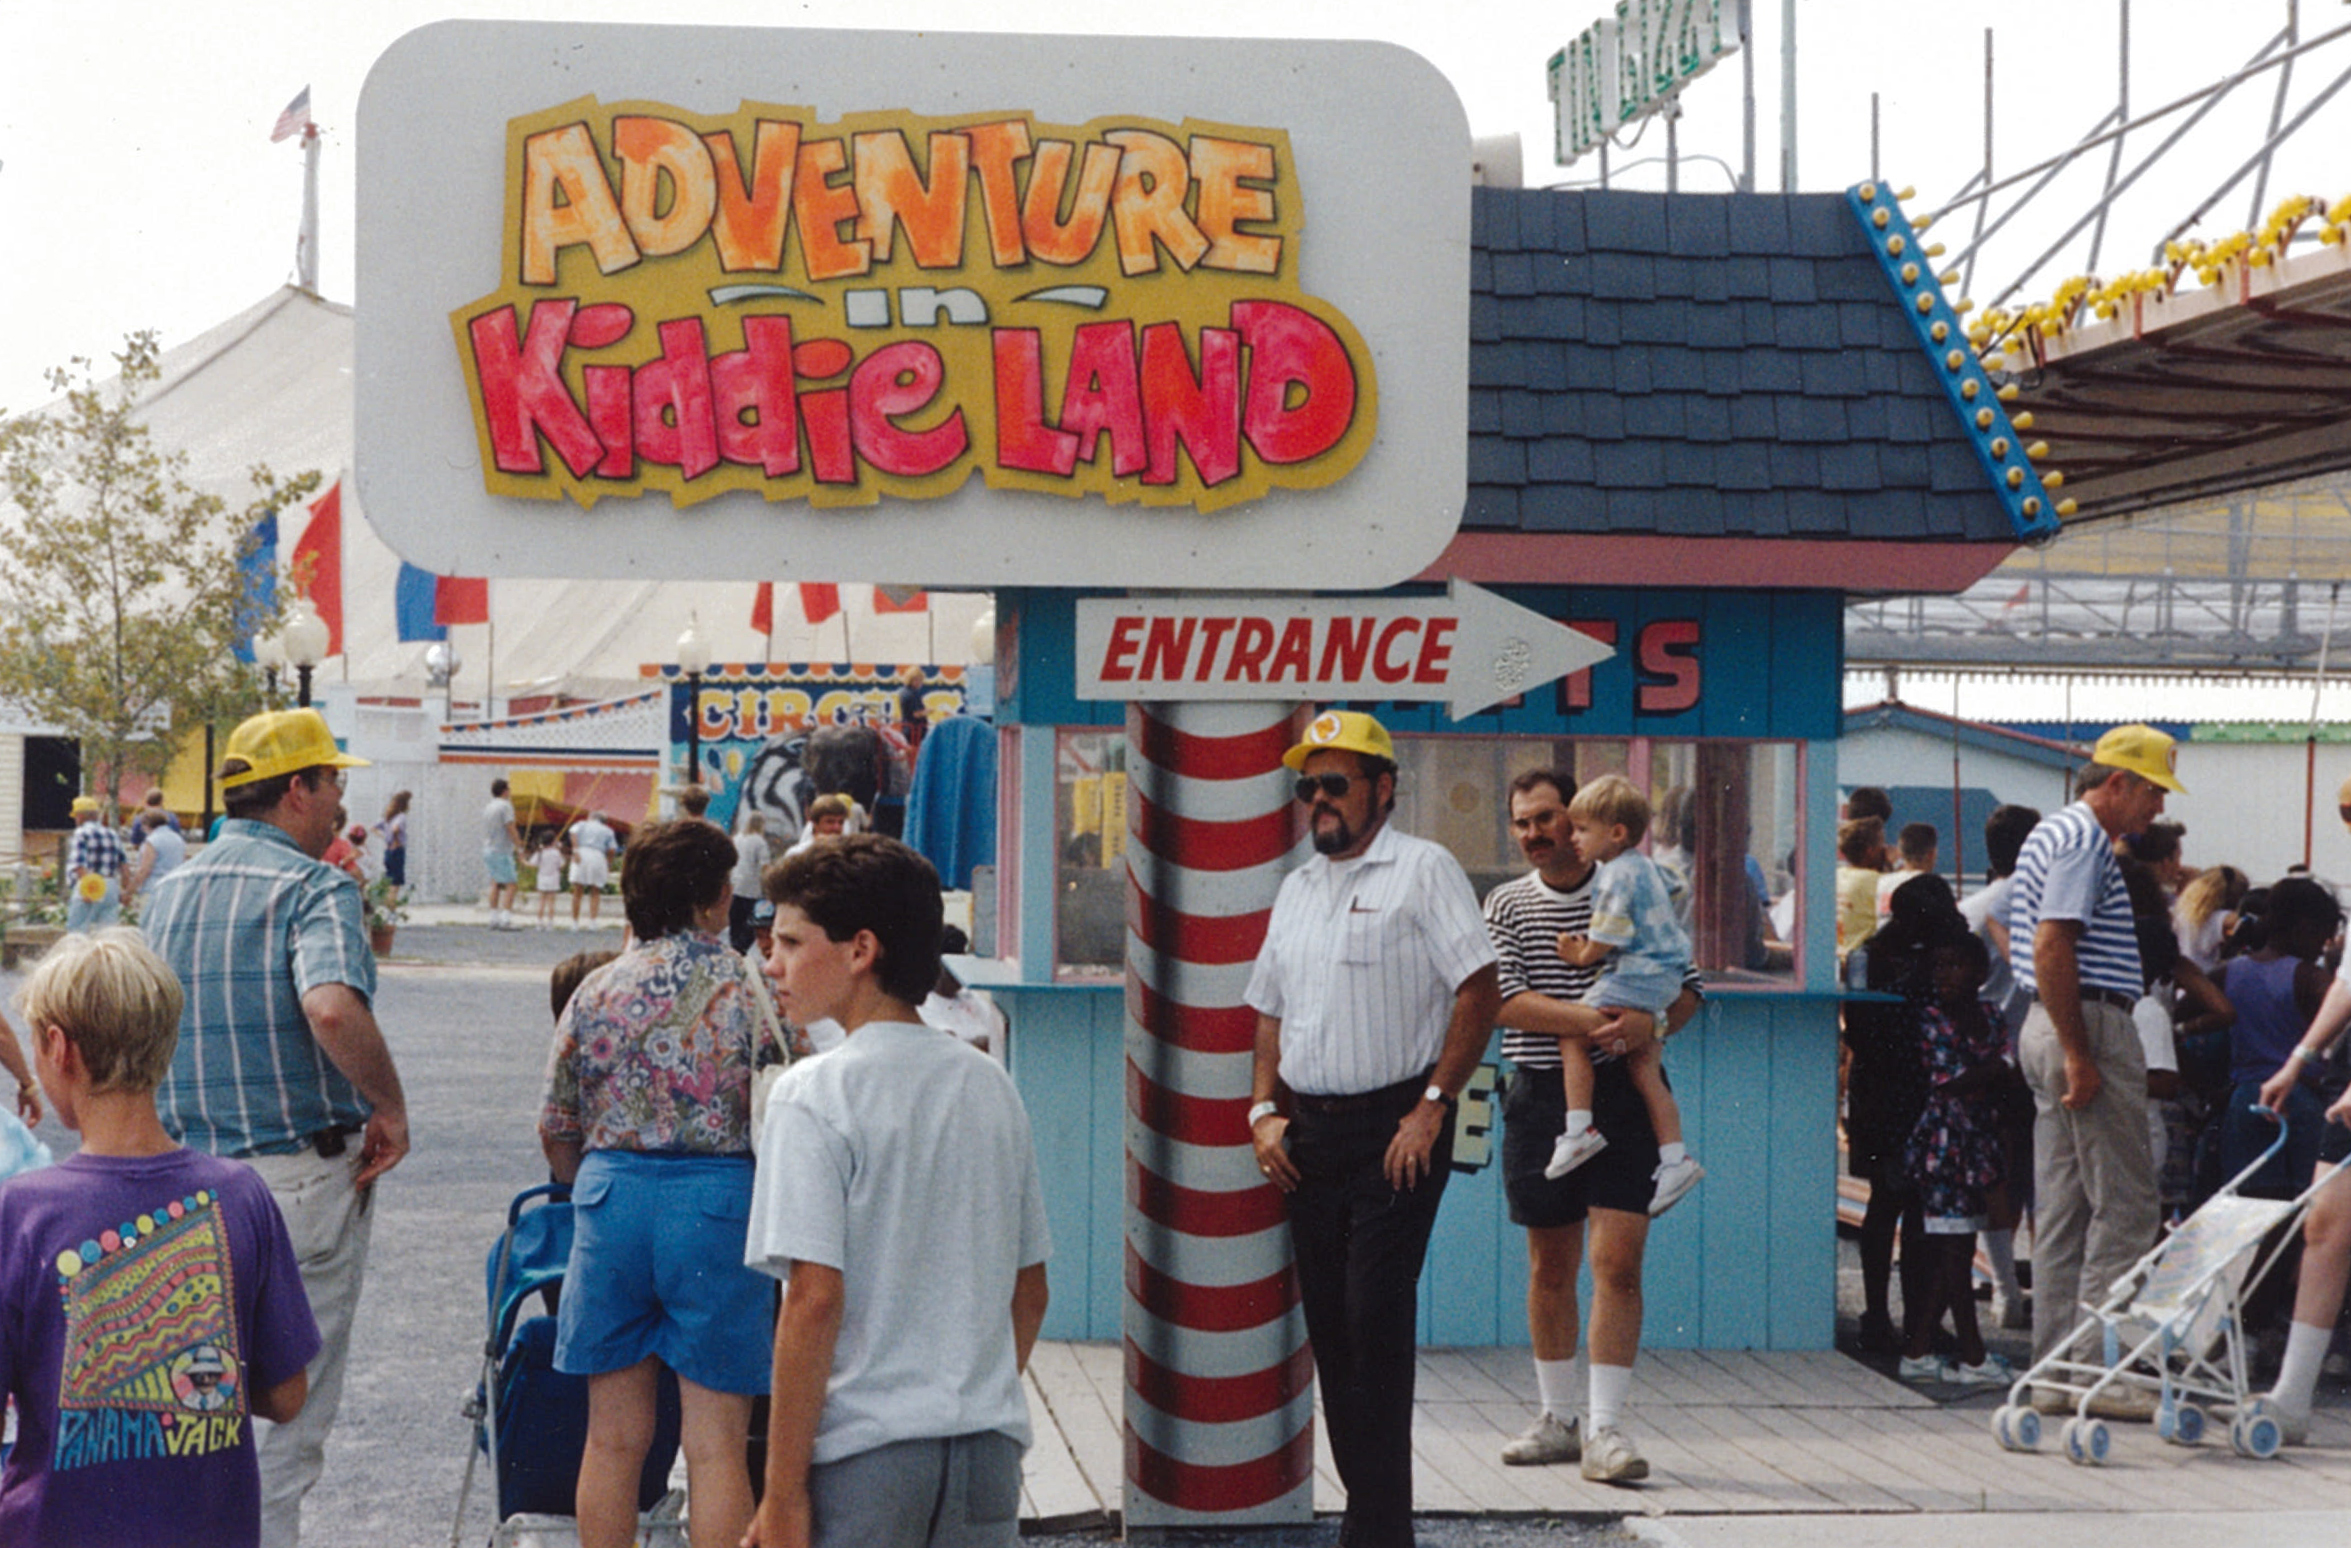 Jolly Roger Adventure in Kiddie Land